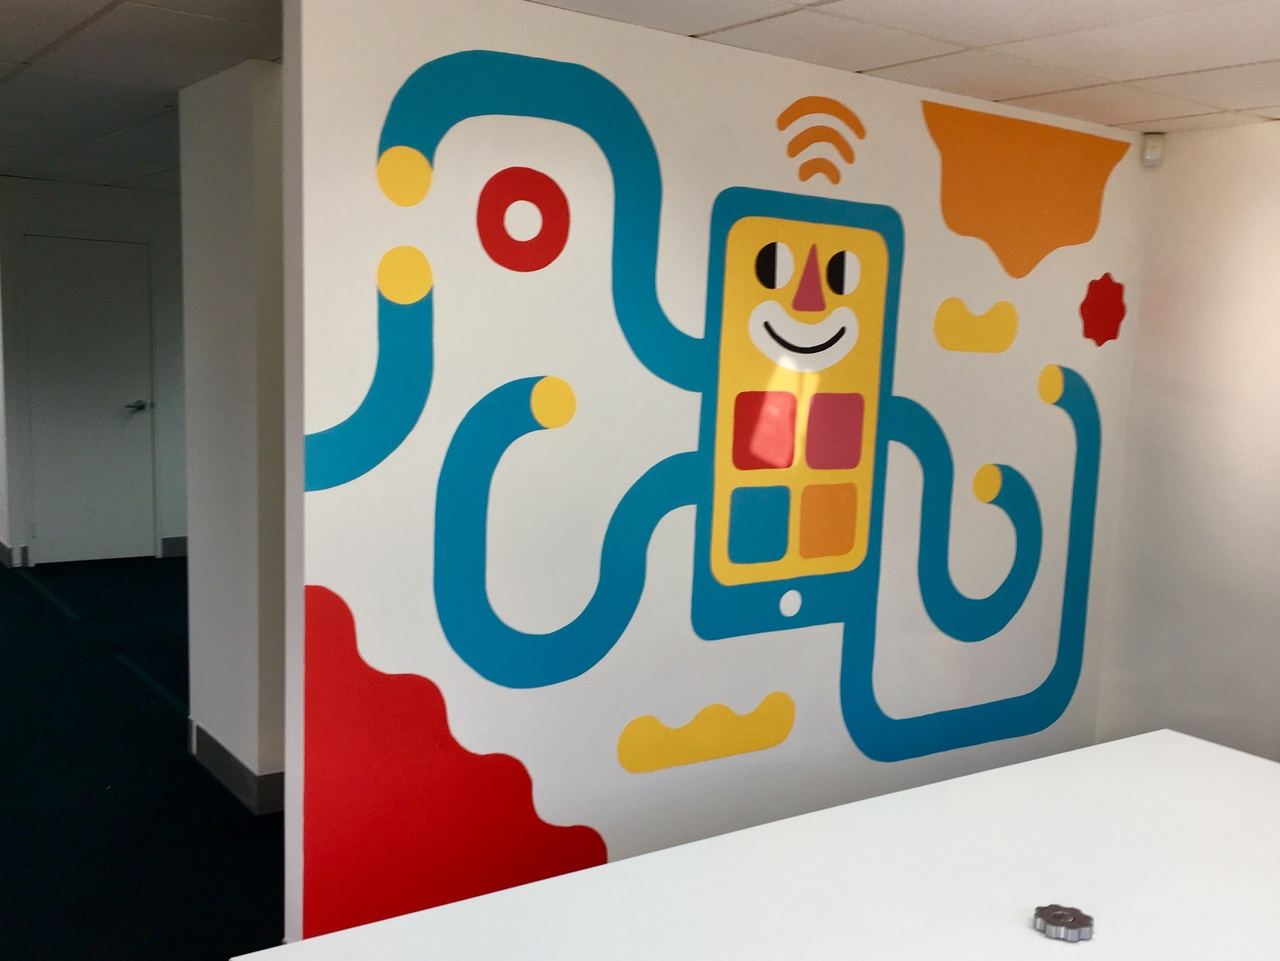 The final meeting room mural